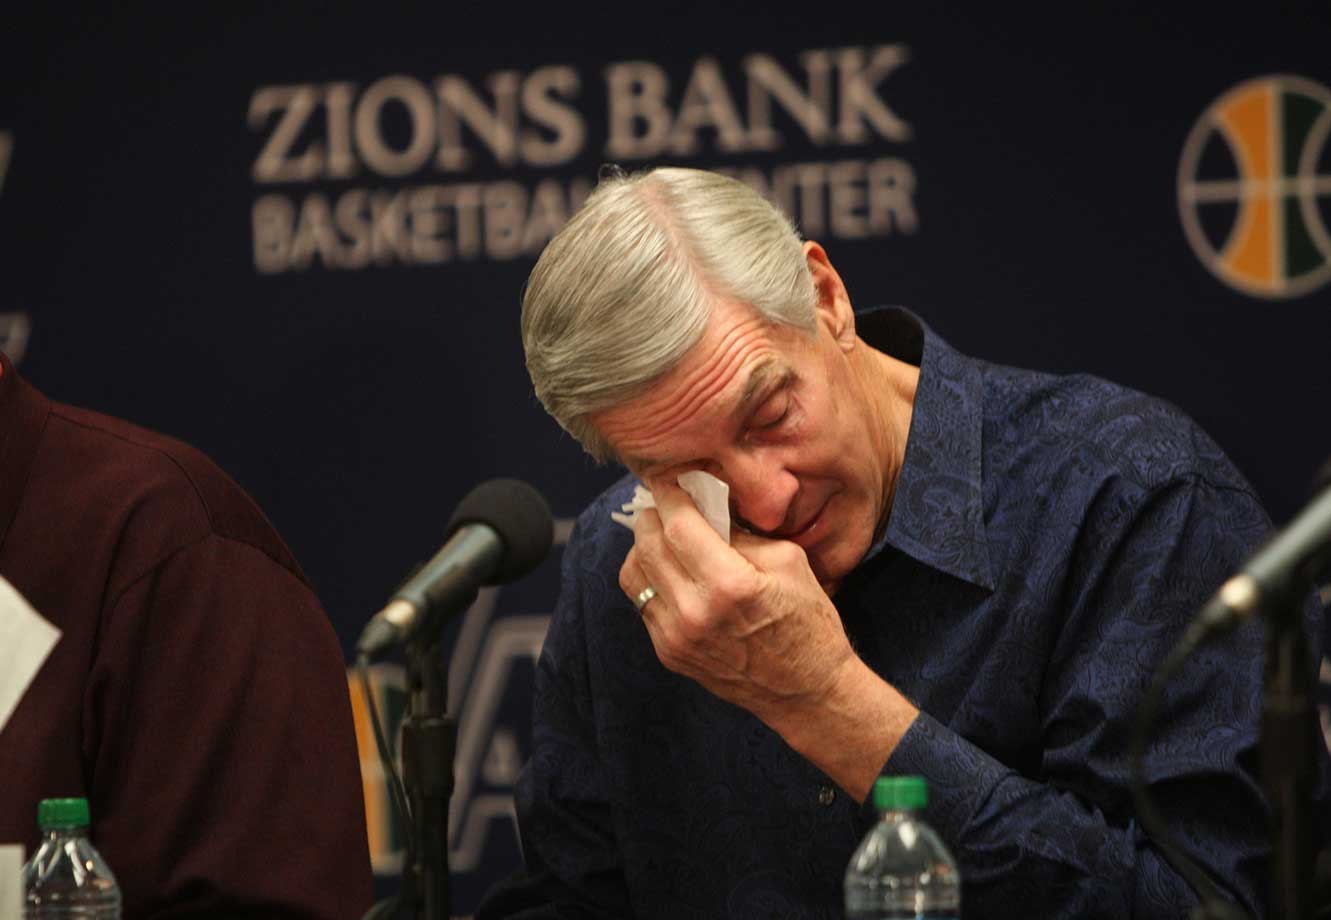 Hall of Famer Jerry Sloan stepped down after 23 seasons and 1,127 wins at the helm of the Utah Jazz, saying he simply ran out of energy to coach anymore. Sloan had just recently signed a one-year contract extension to carry him through the 2011-12 season.